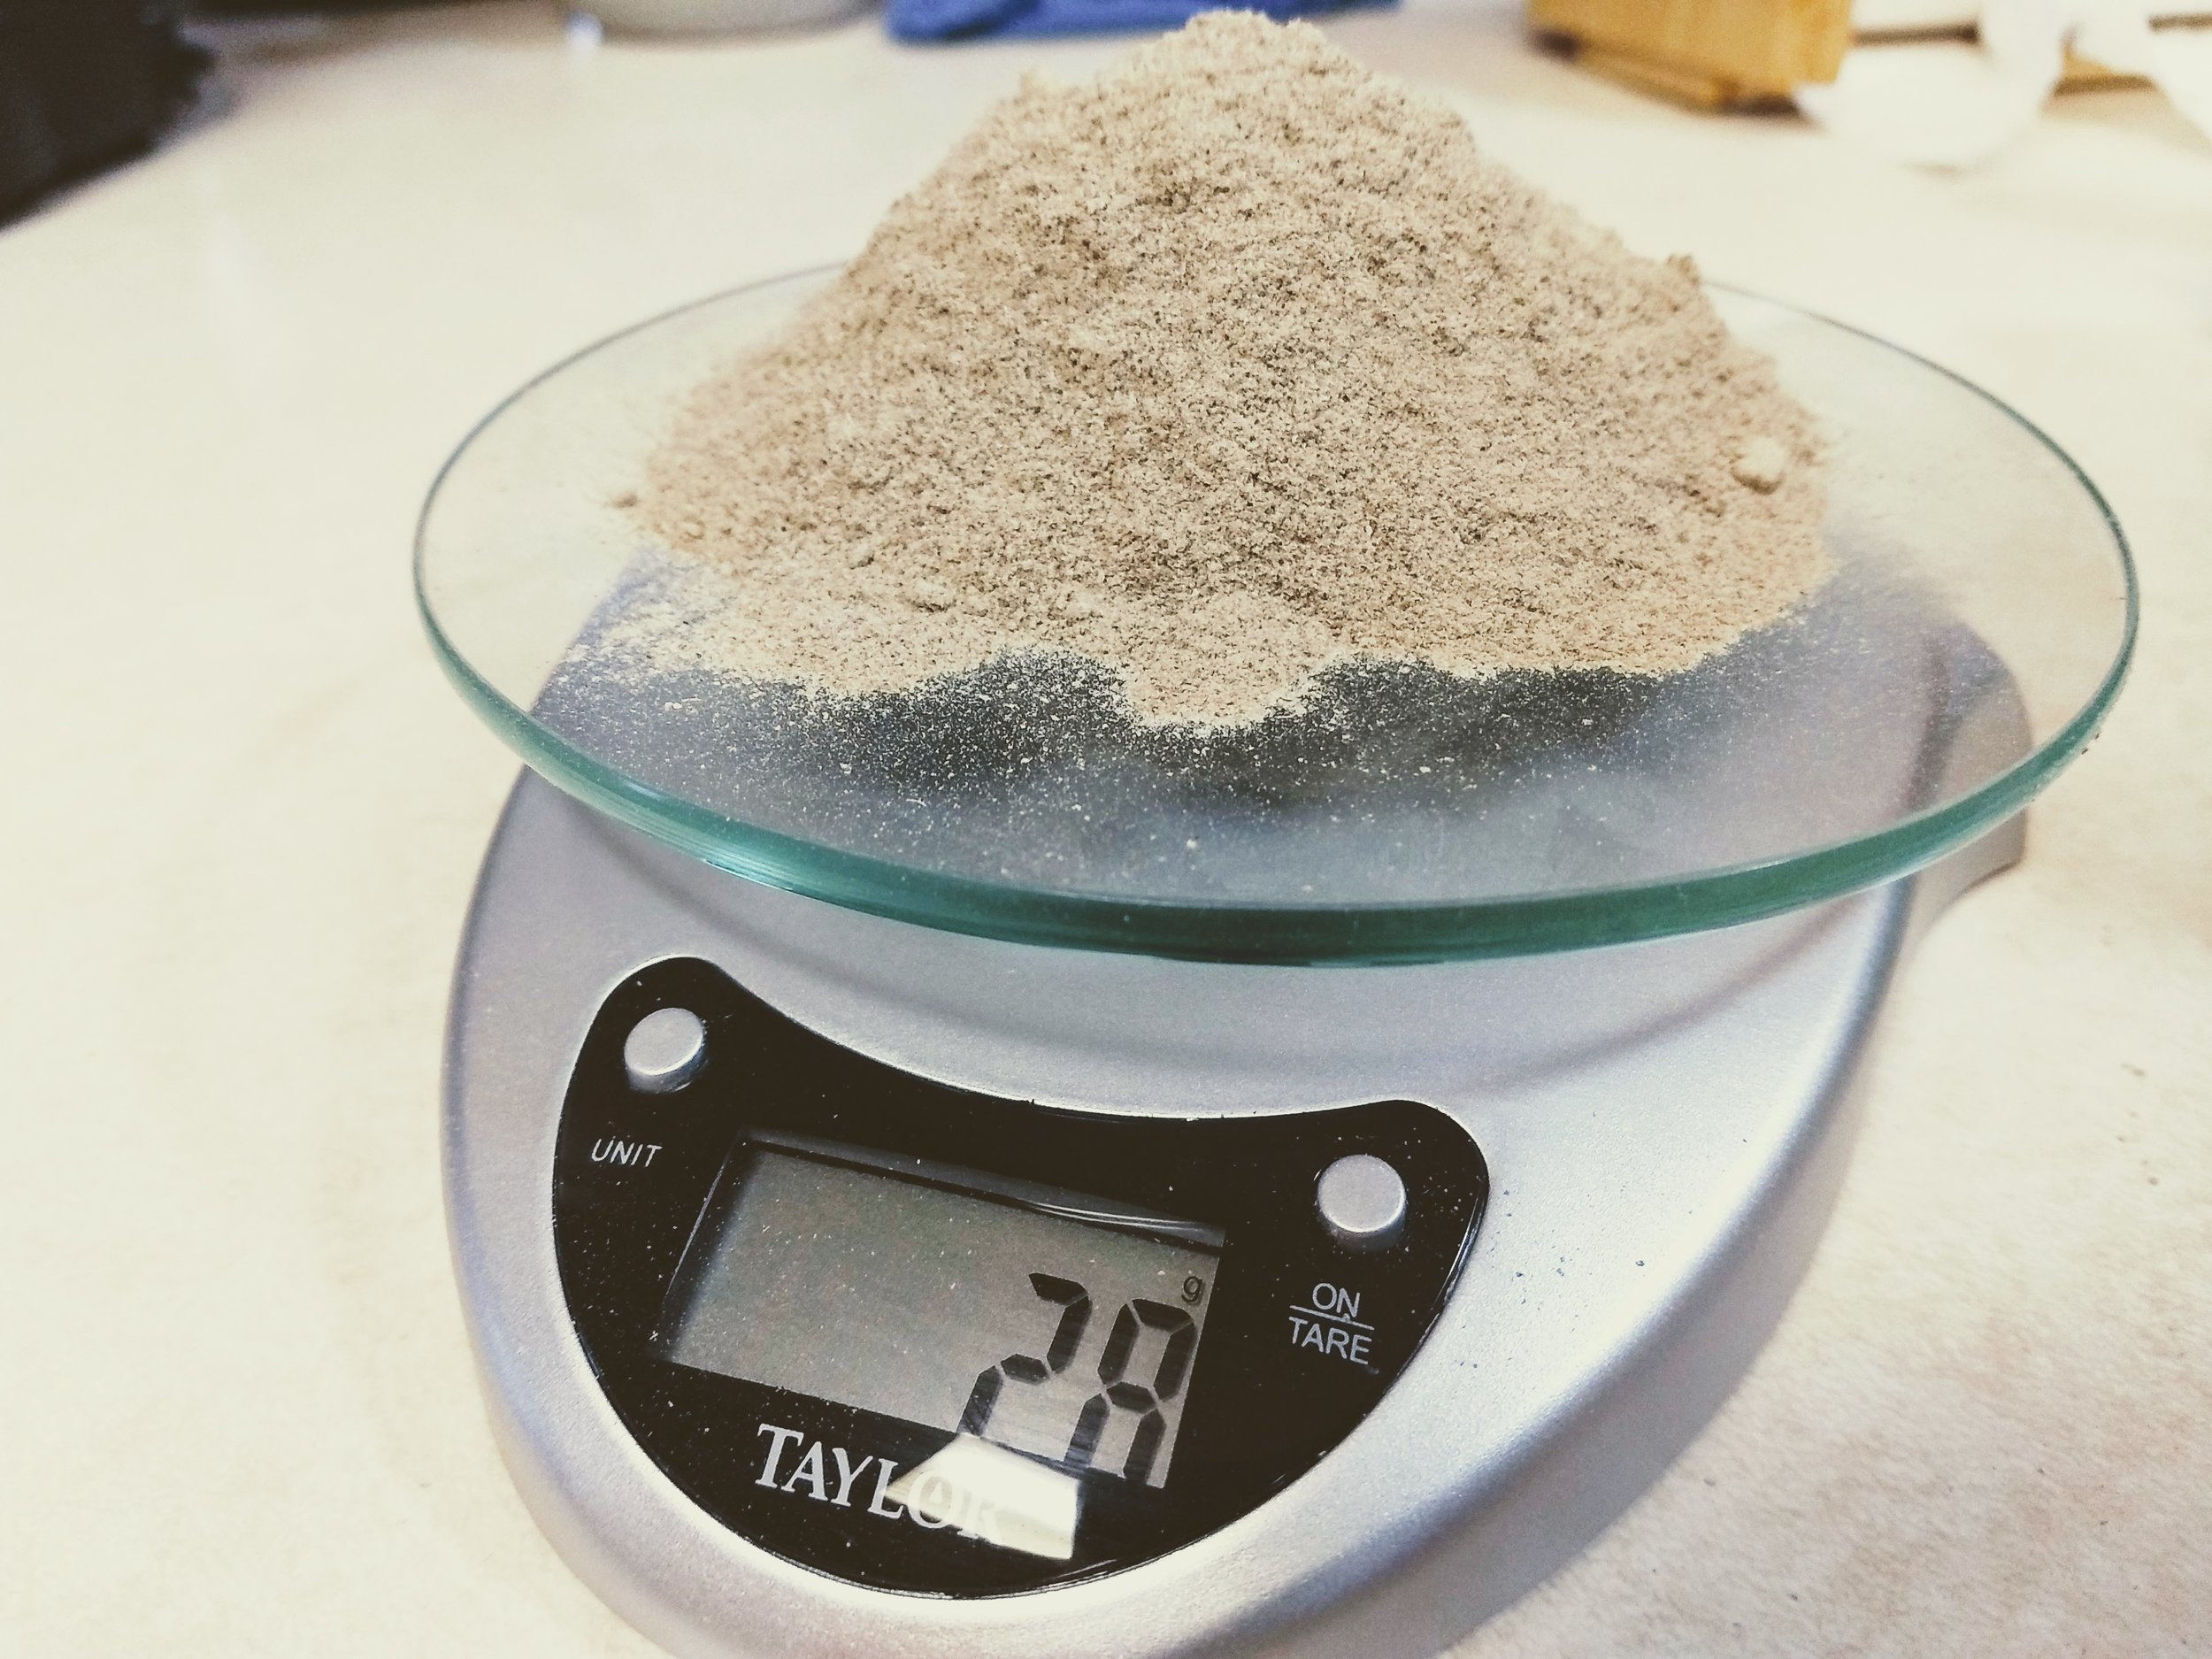 28 grams or 1 ounce of cricket powder boasts 19 grams of protein. A chicken thigh usually has around 10 grams, an egg has 6 grams, and an ounce cut of beef usually 7 grams. Half of the amount shown above would still have more protein than both the chicken and beef. 28 grams of cricket powder also provide 10% daily recommendation of iron, 3 grams of fiber and serves as a source of healthy fatty acids.